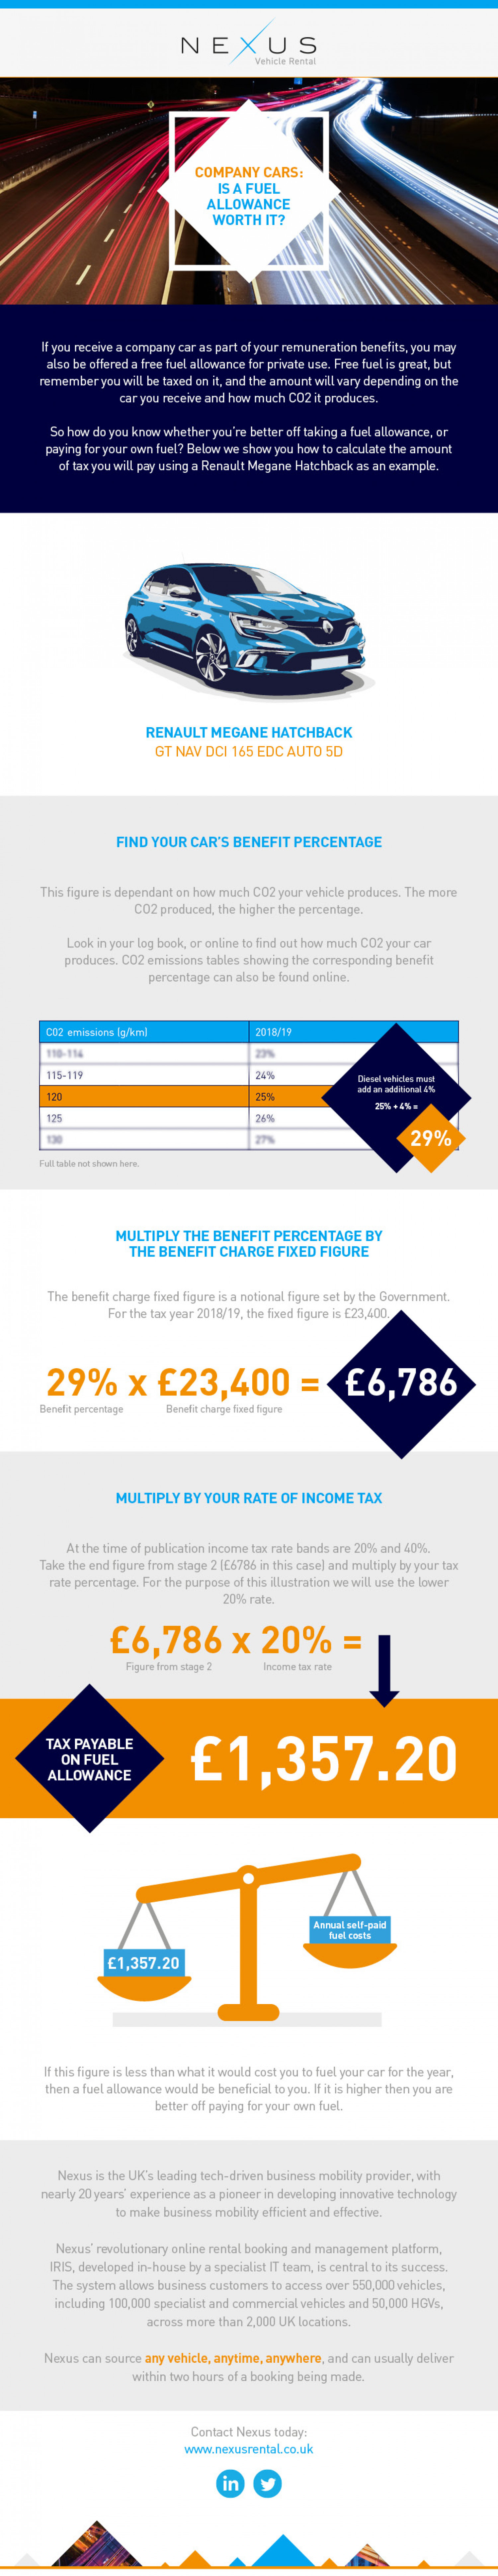 Company Cars: Is a Fuel Allowance Worth it? Infographic